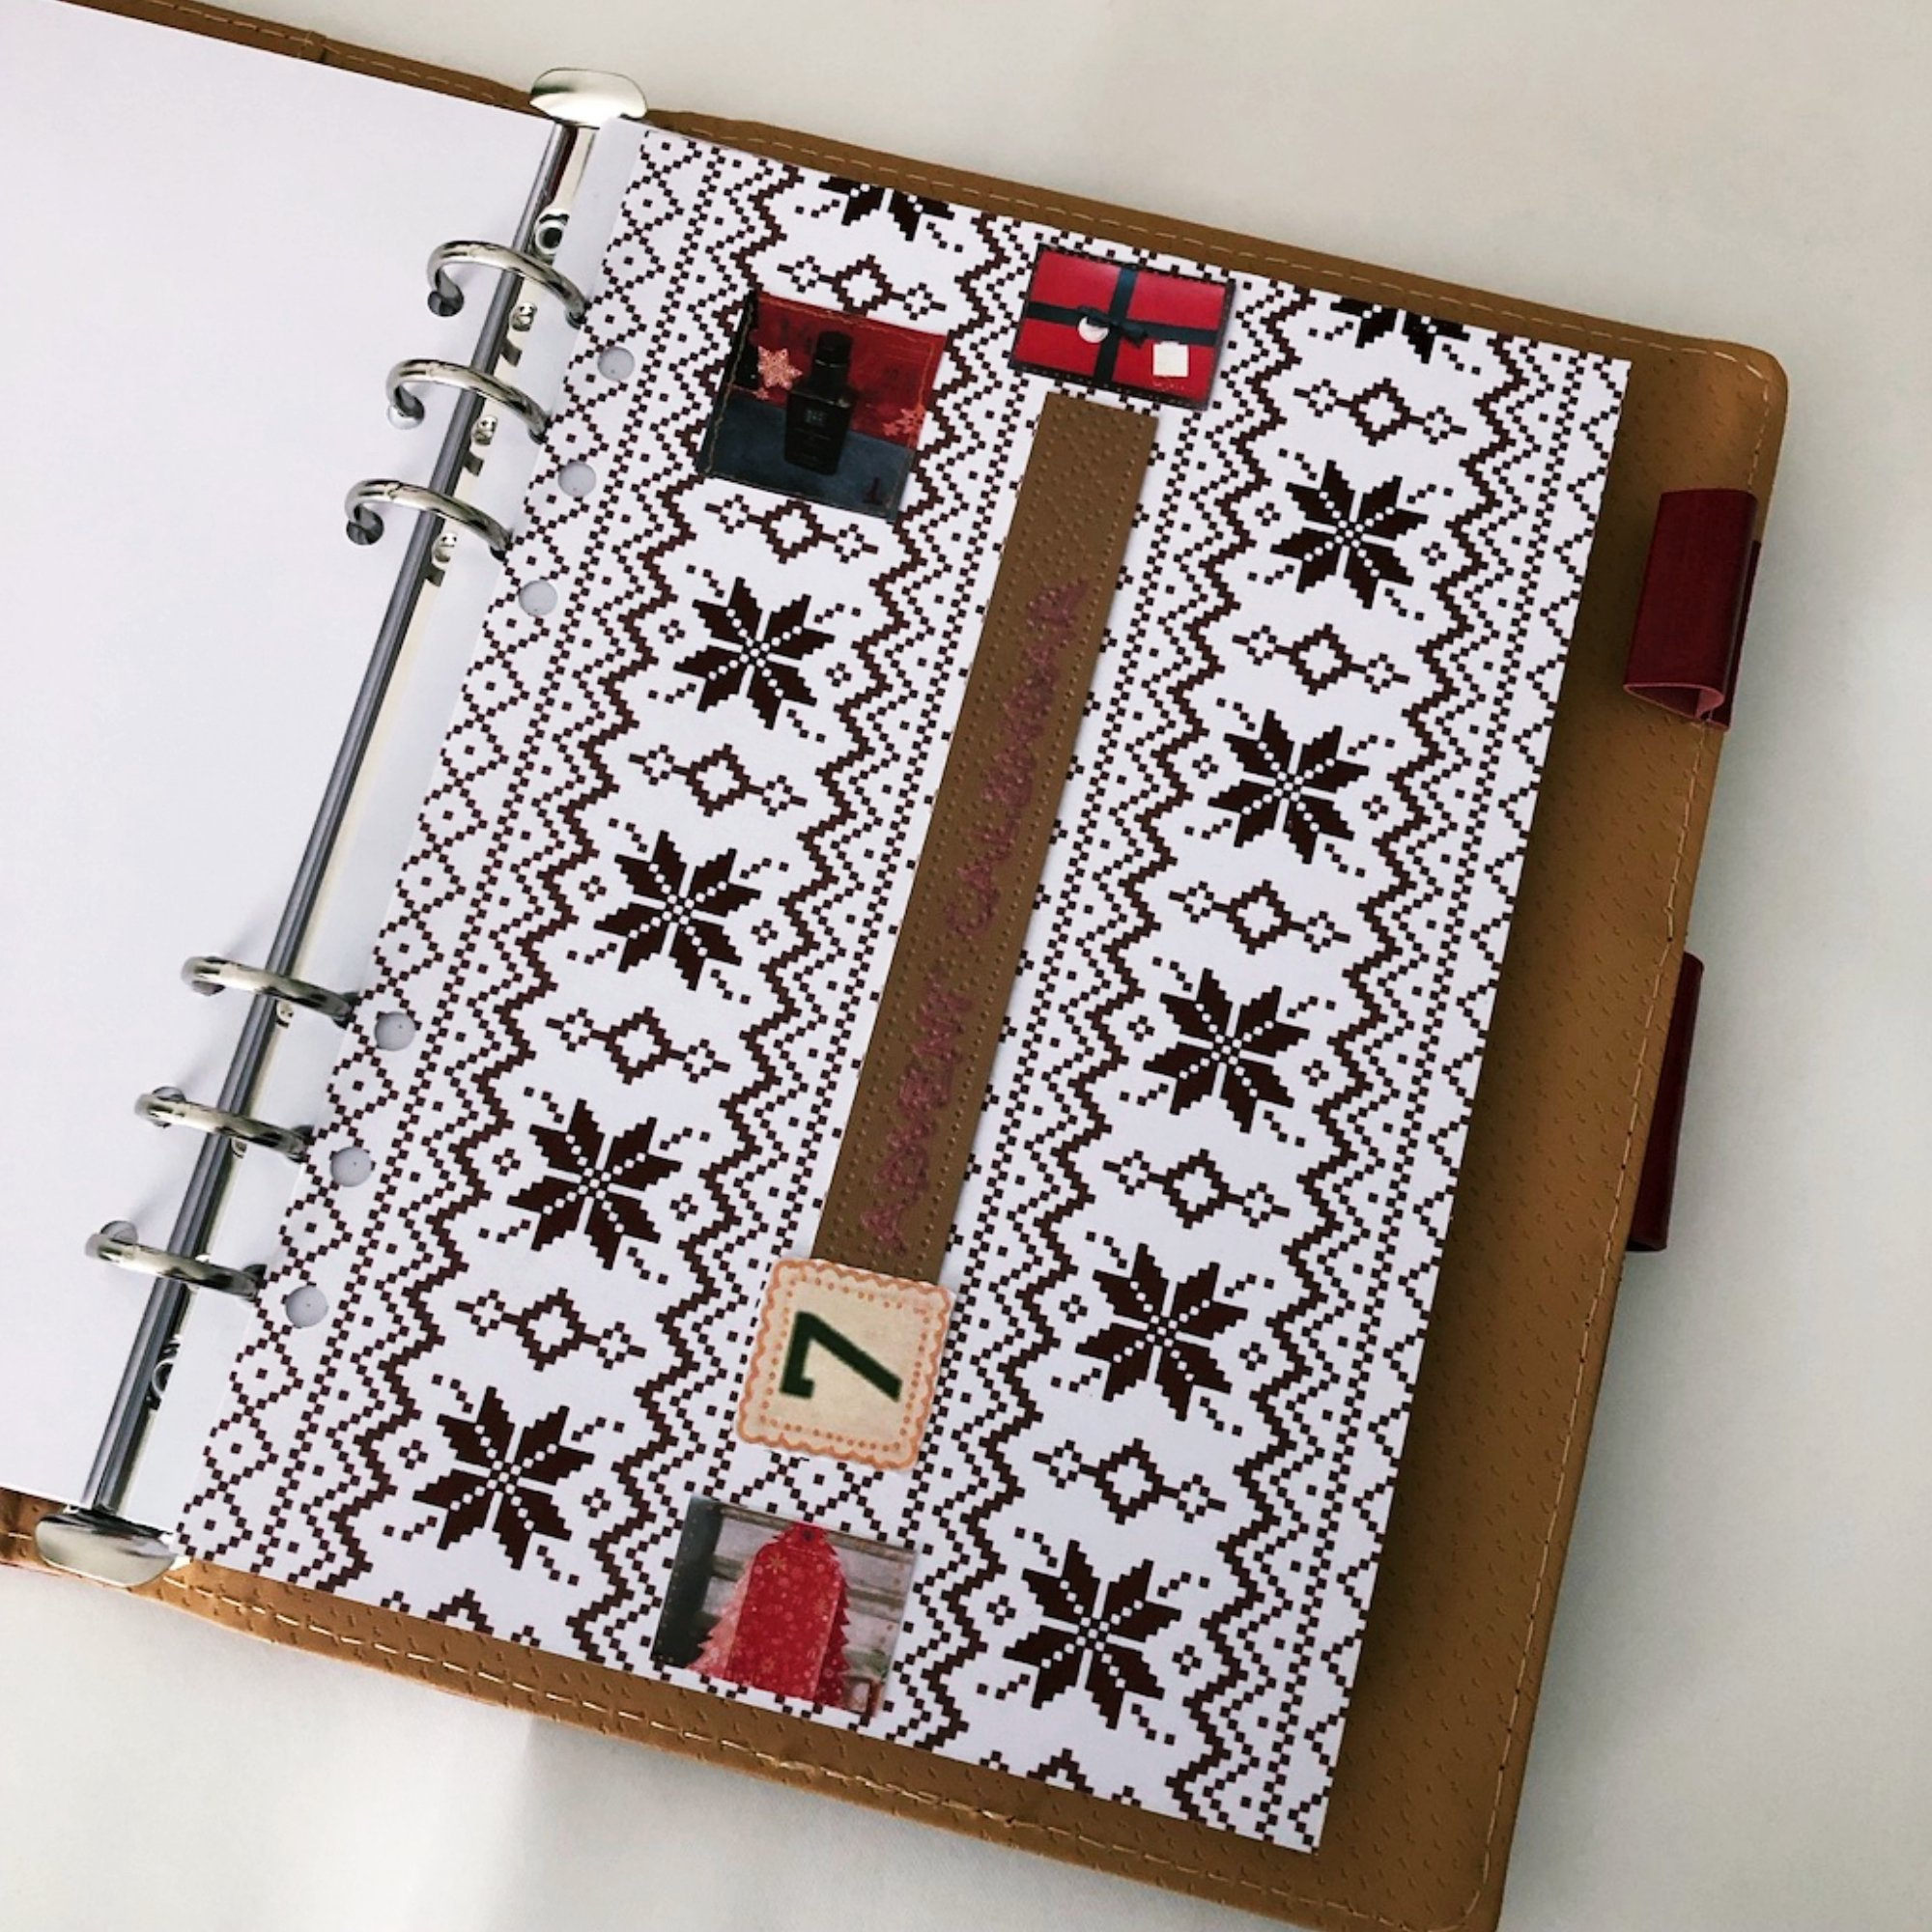 Creative journaling - December daily memories Day 7 - itstartswithacoffee.com #creativejournaling #journaling #daily